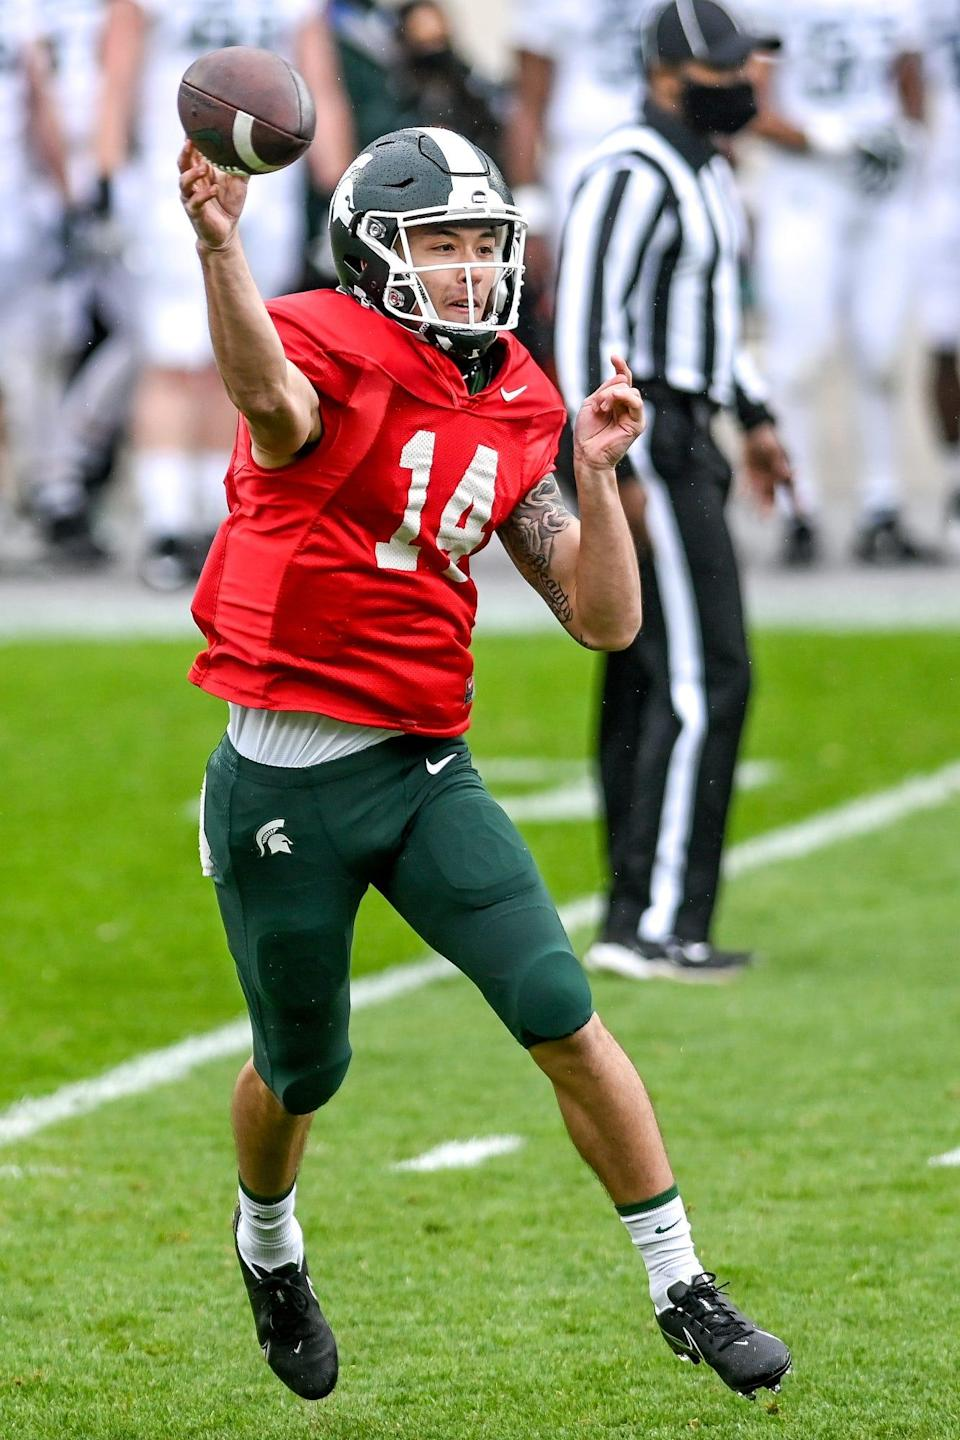 Michigan State's Noah Kim throws a pass during the spring football game on Saturday, April 24, 2021, at Spartan Stadium in East Lansing.